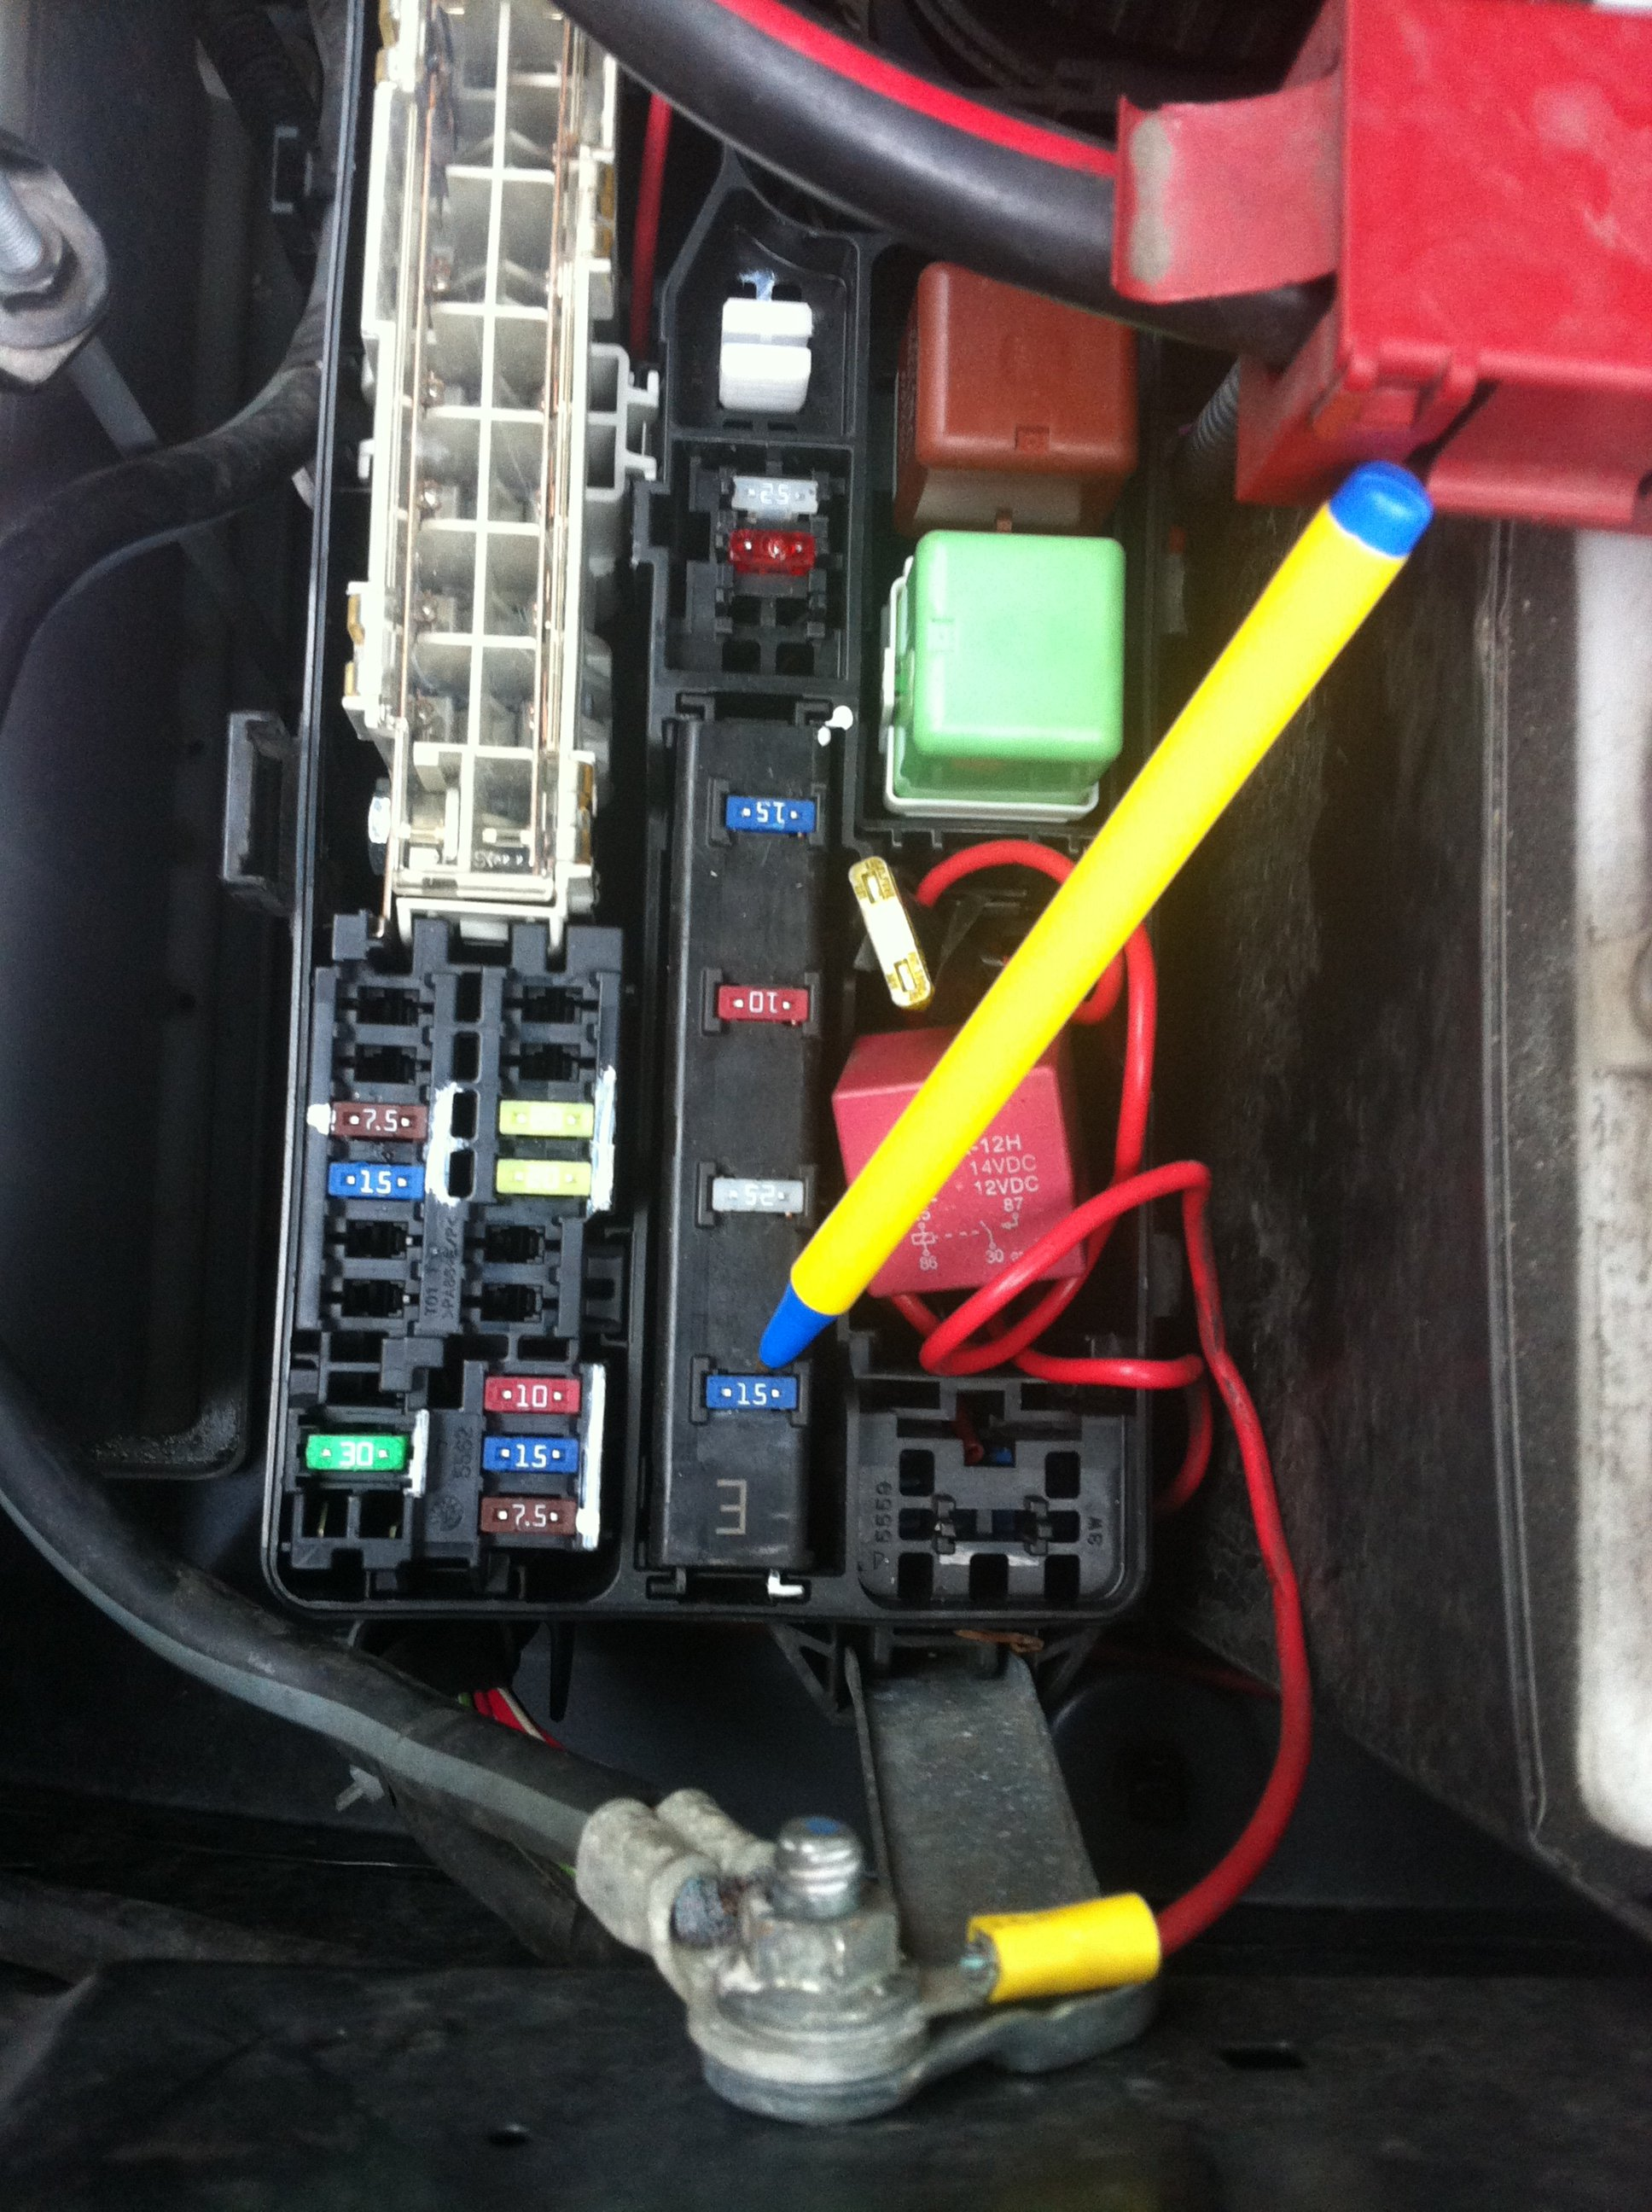 1994 Toyota Corolla Fuse Box Location Trusted Wiring Diagram I Have A 2010 Hilux Invincible With 2 Battery System Lost 2007